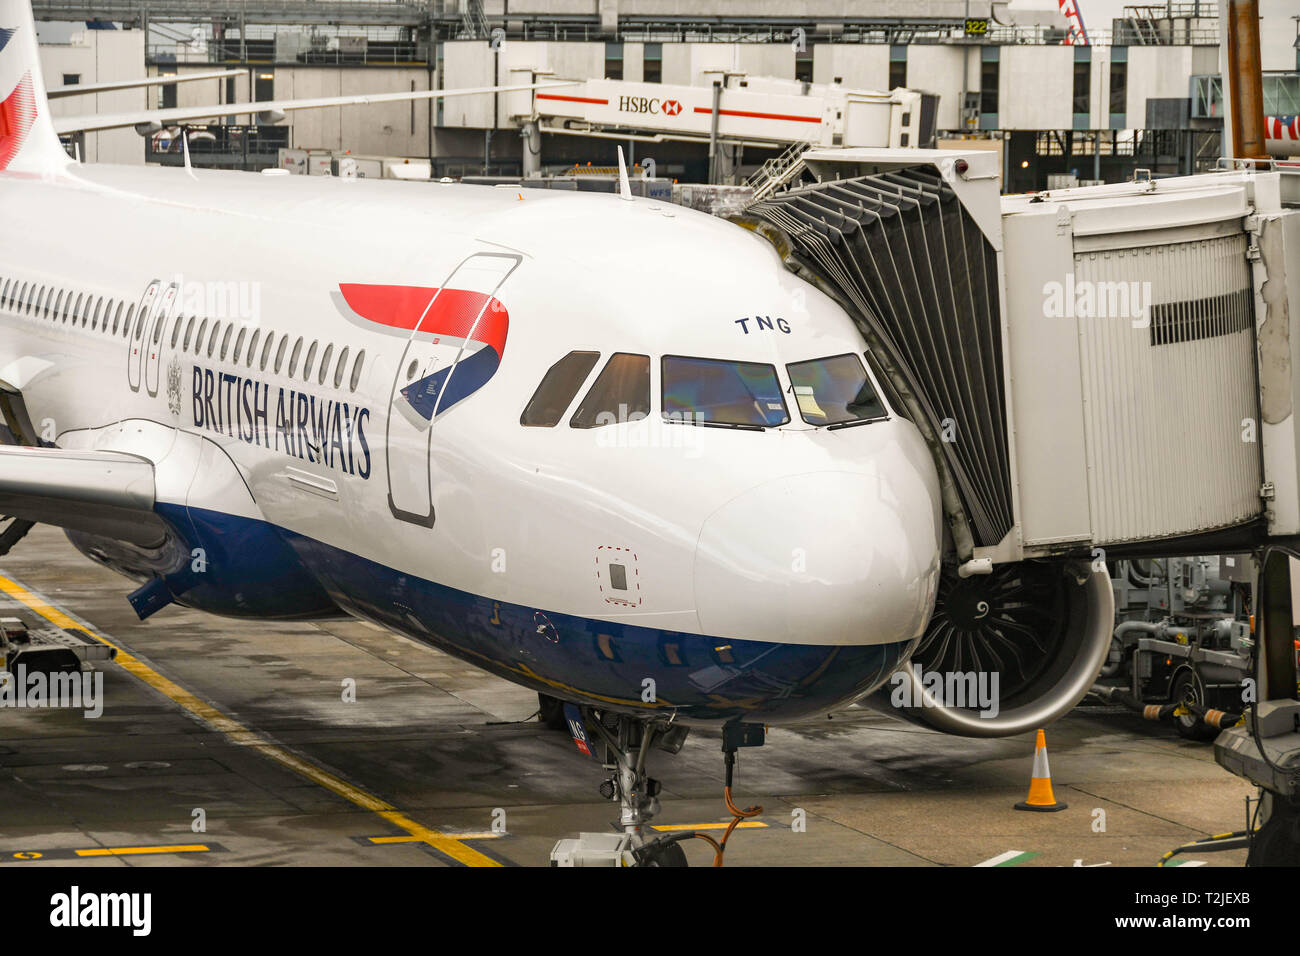 LONDON HEATHROW AIRPORT, ENGLAND - FEBRUARY 2019:  New British Airways Airbus A320 Neo short-haul jet attached to a passenger jettty - Stock Image